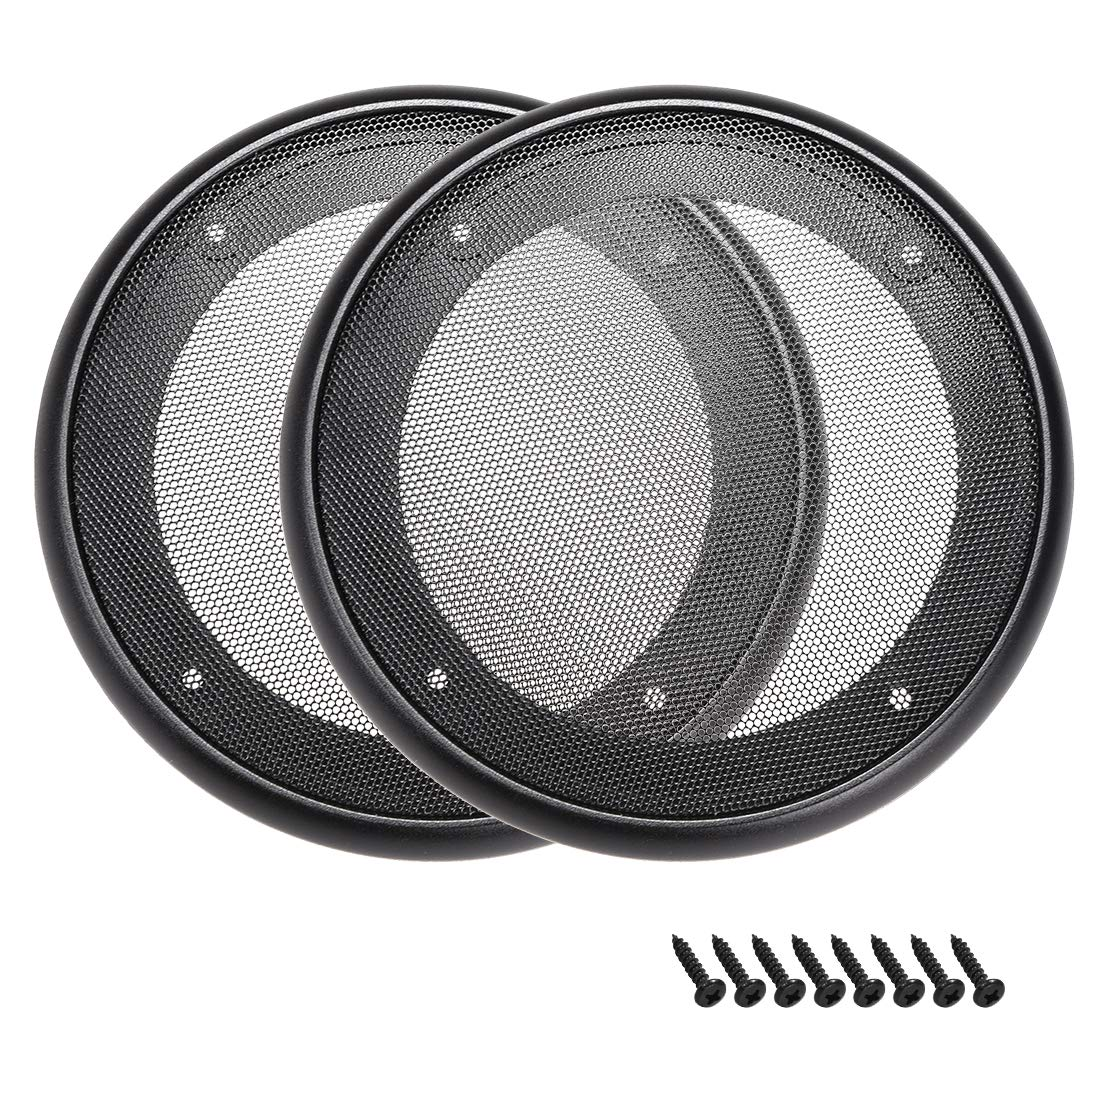 Easy Installation and Dismantling 2-PCS Black Colour CT Sounds 6.5 Inch Car Audio Speaker Grills Rustproof Dust Resistance